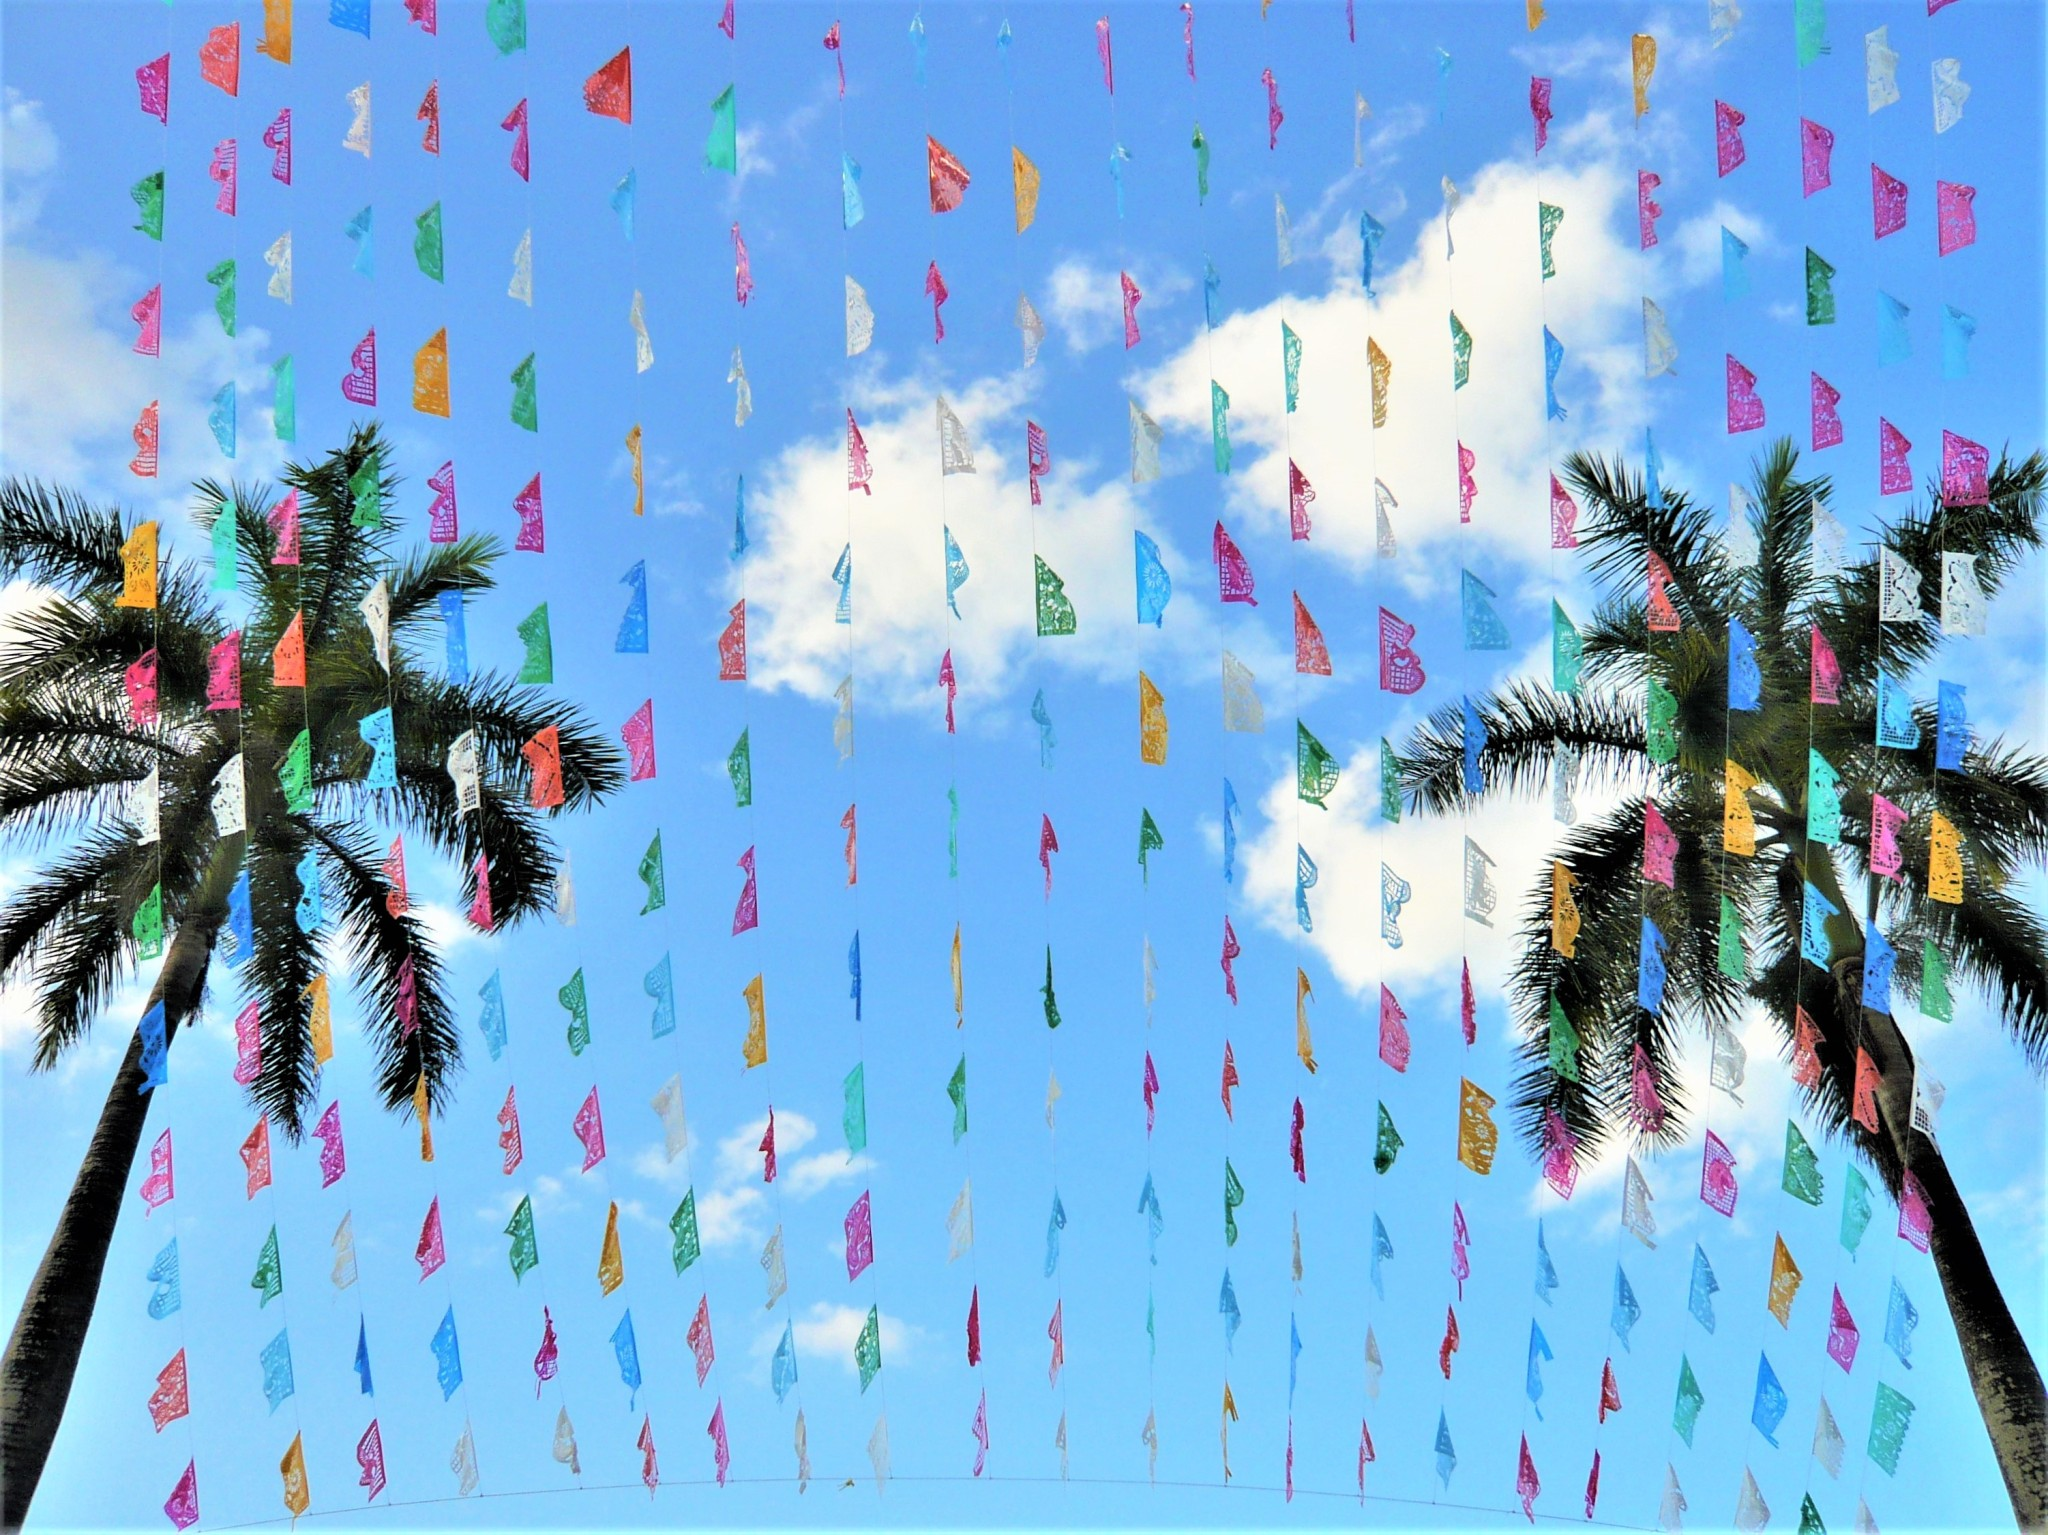 Colourful streamer decorations and two palm trees set against a blue sky at a local Mexican festival.